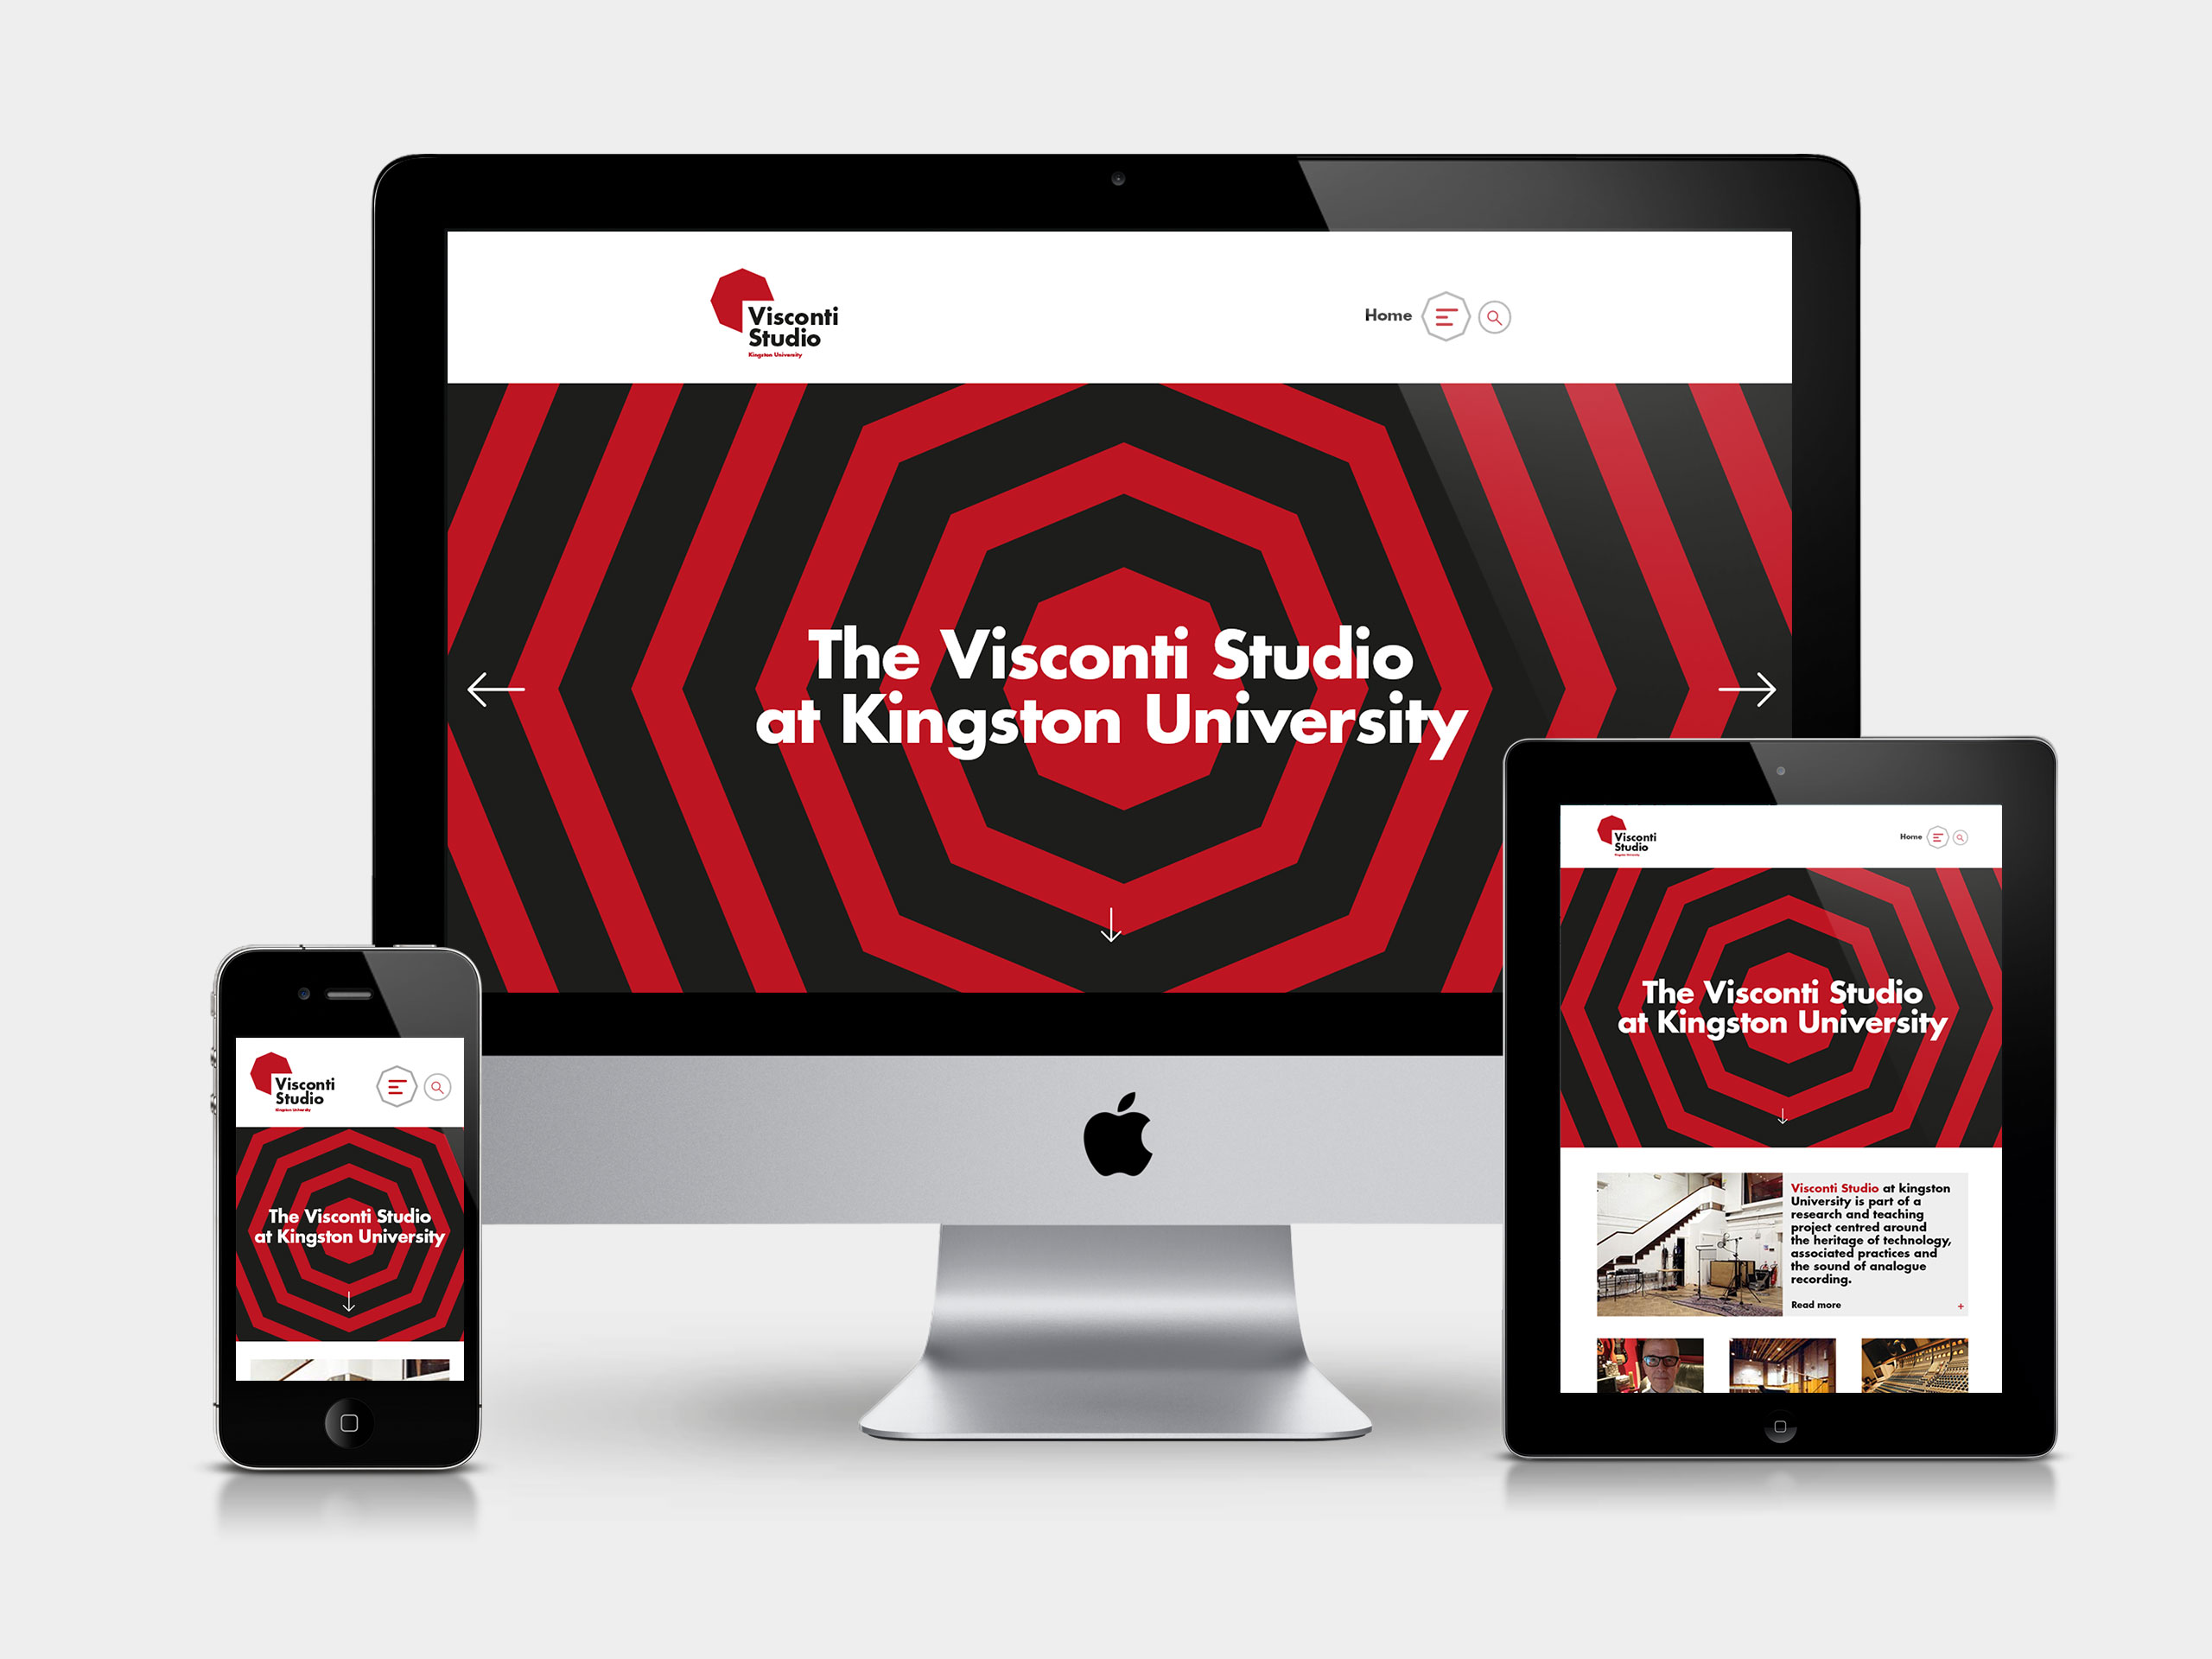 Visconti_Kingston_University_Website_Adapt_image1